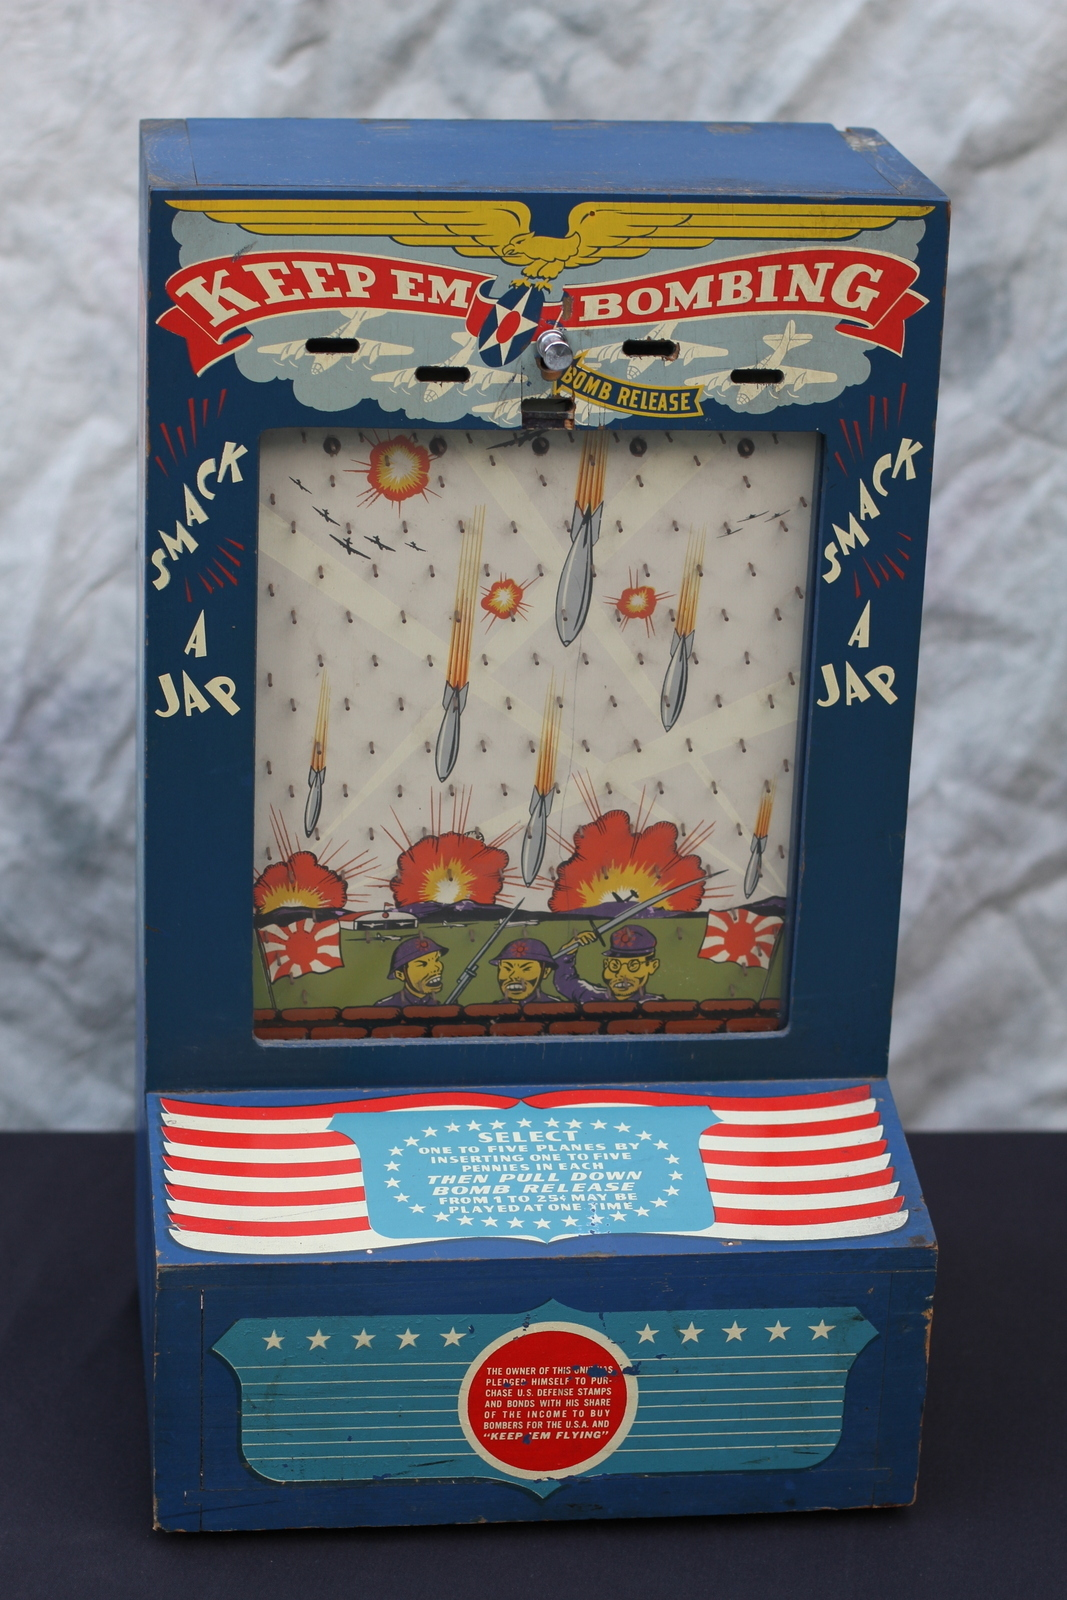 1942 Wwii Atlas Novelty Keep Em Bombing Penny Drop Trade Stimulator Coin Op Game Greatest Collectibles